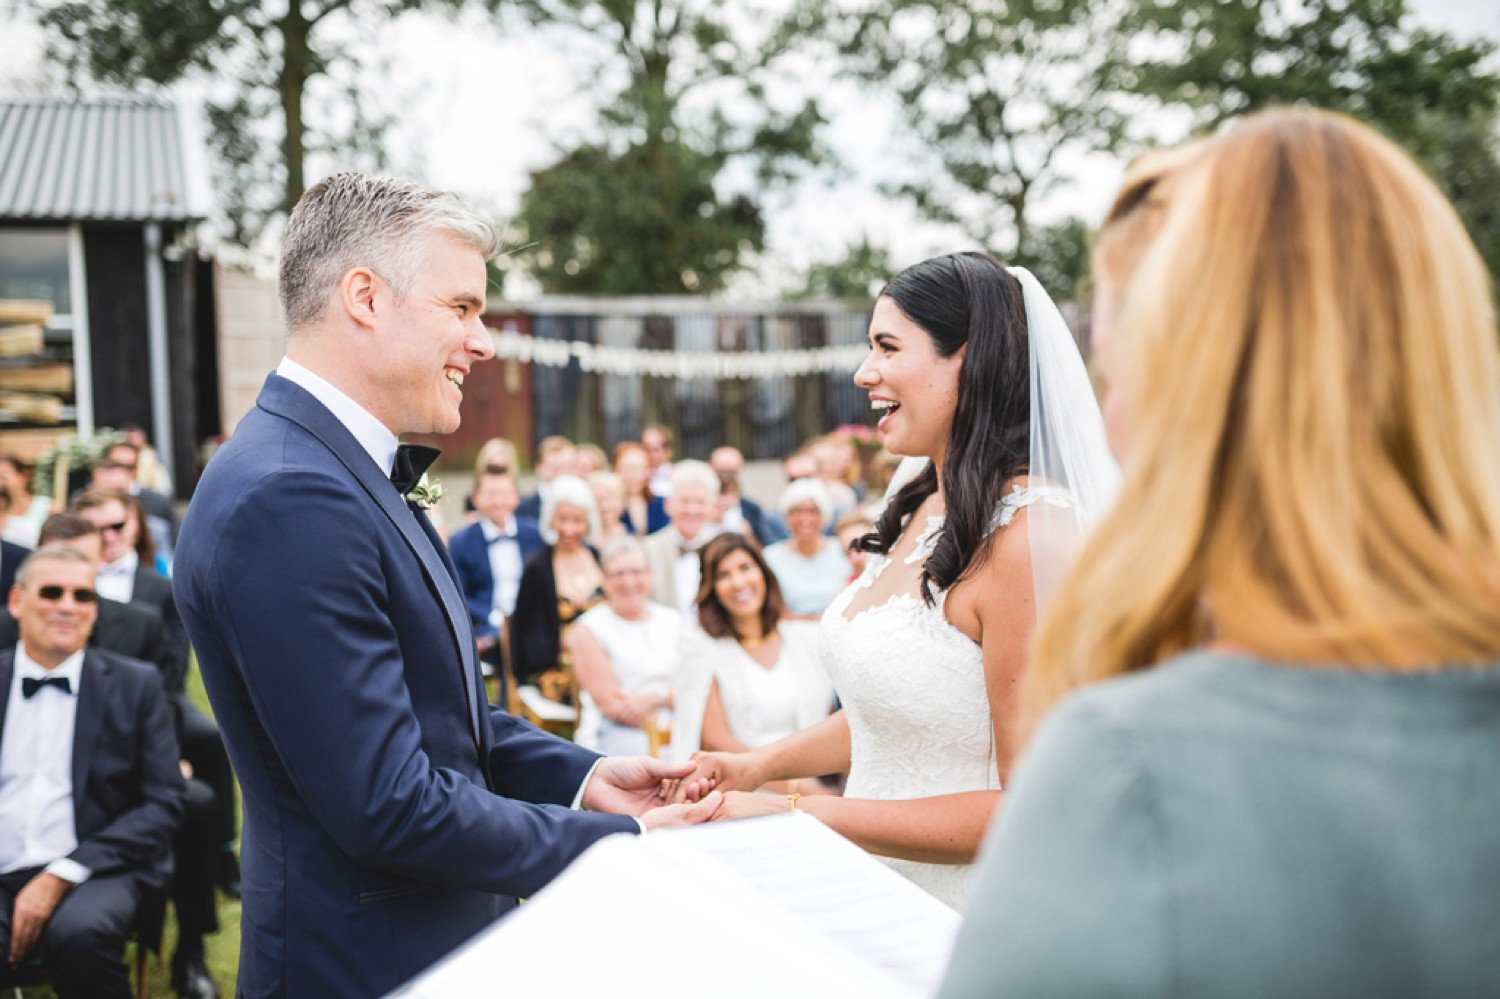 wedding-thomas-kavita-by-nienke-van-denderen-fotografie-58